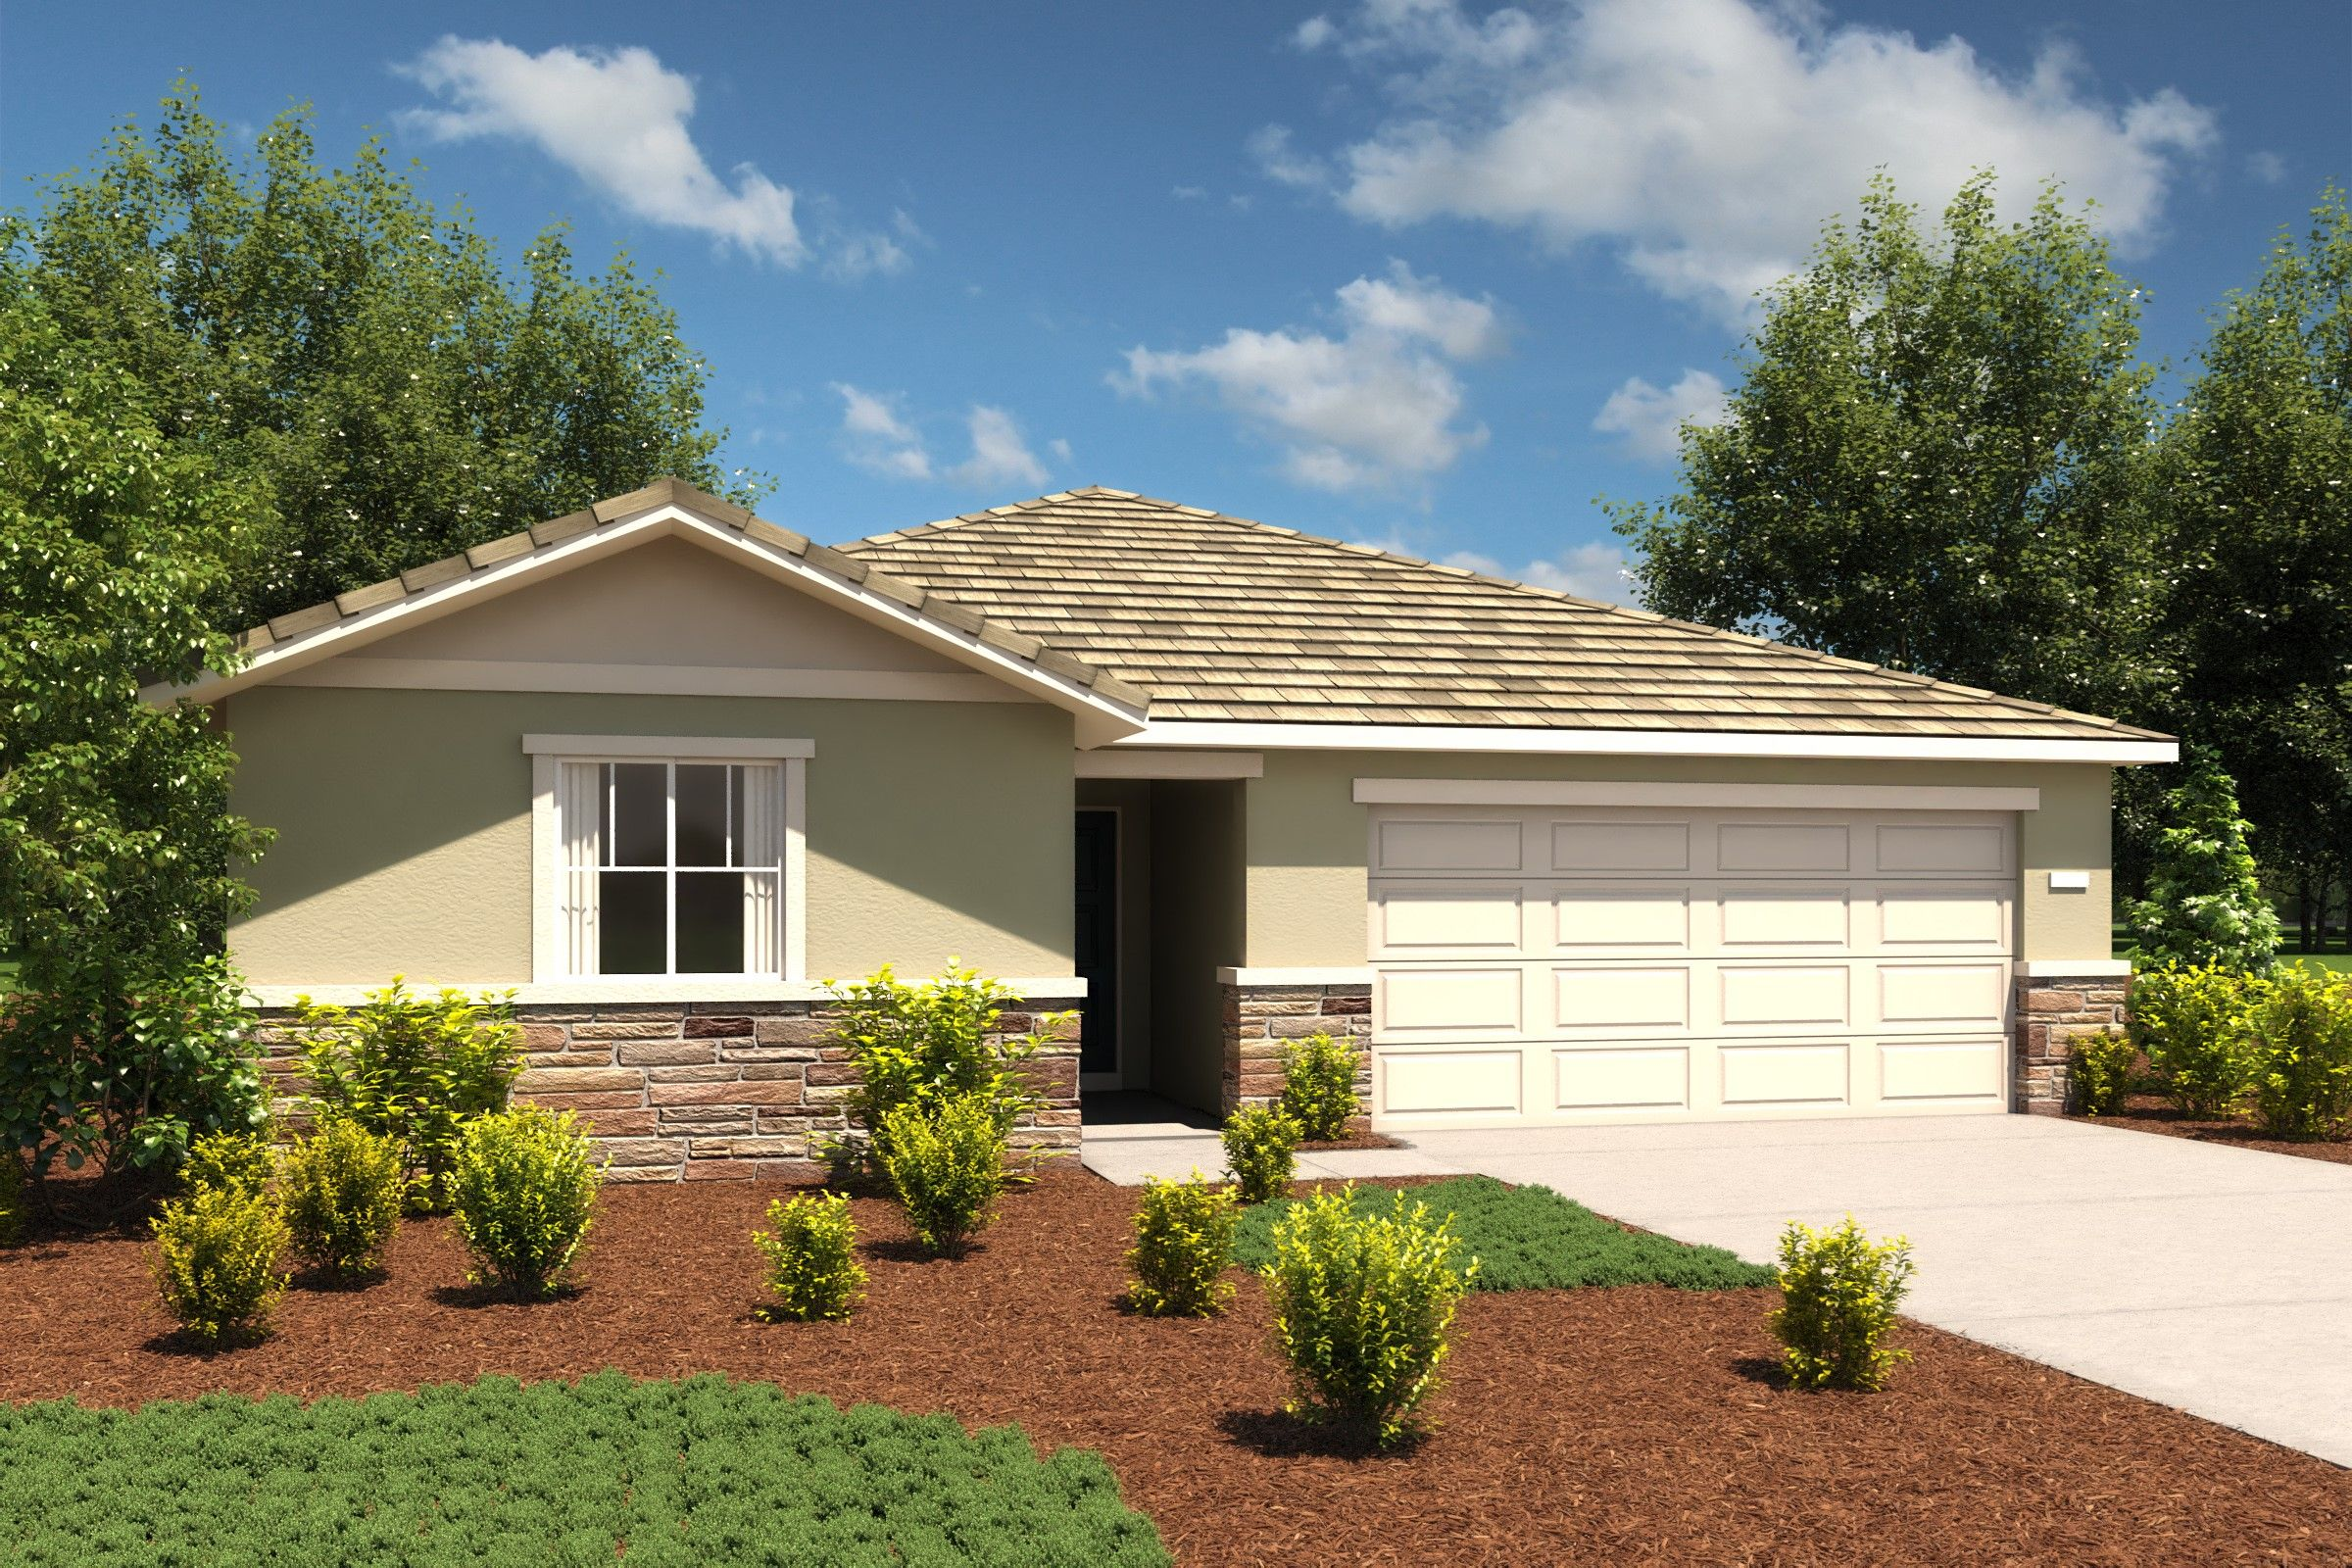 Whatever you are searching for is here one story homes luxury home - Whatever You Are Searching For Is Here One Story Homes Luxury Home 21